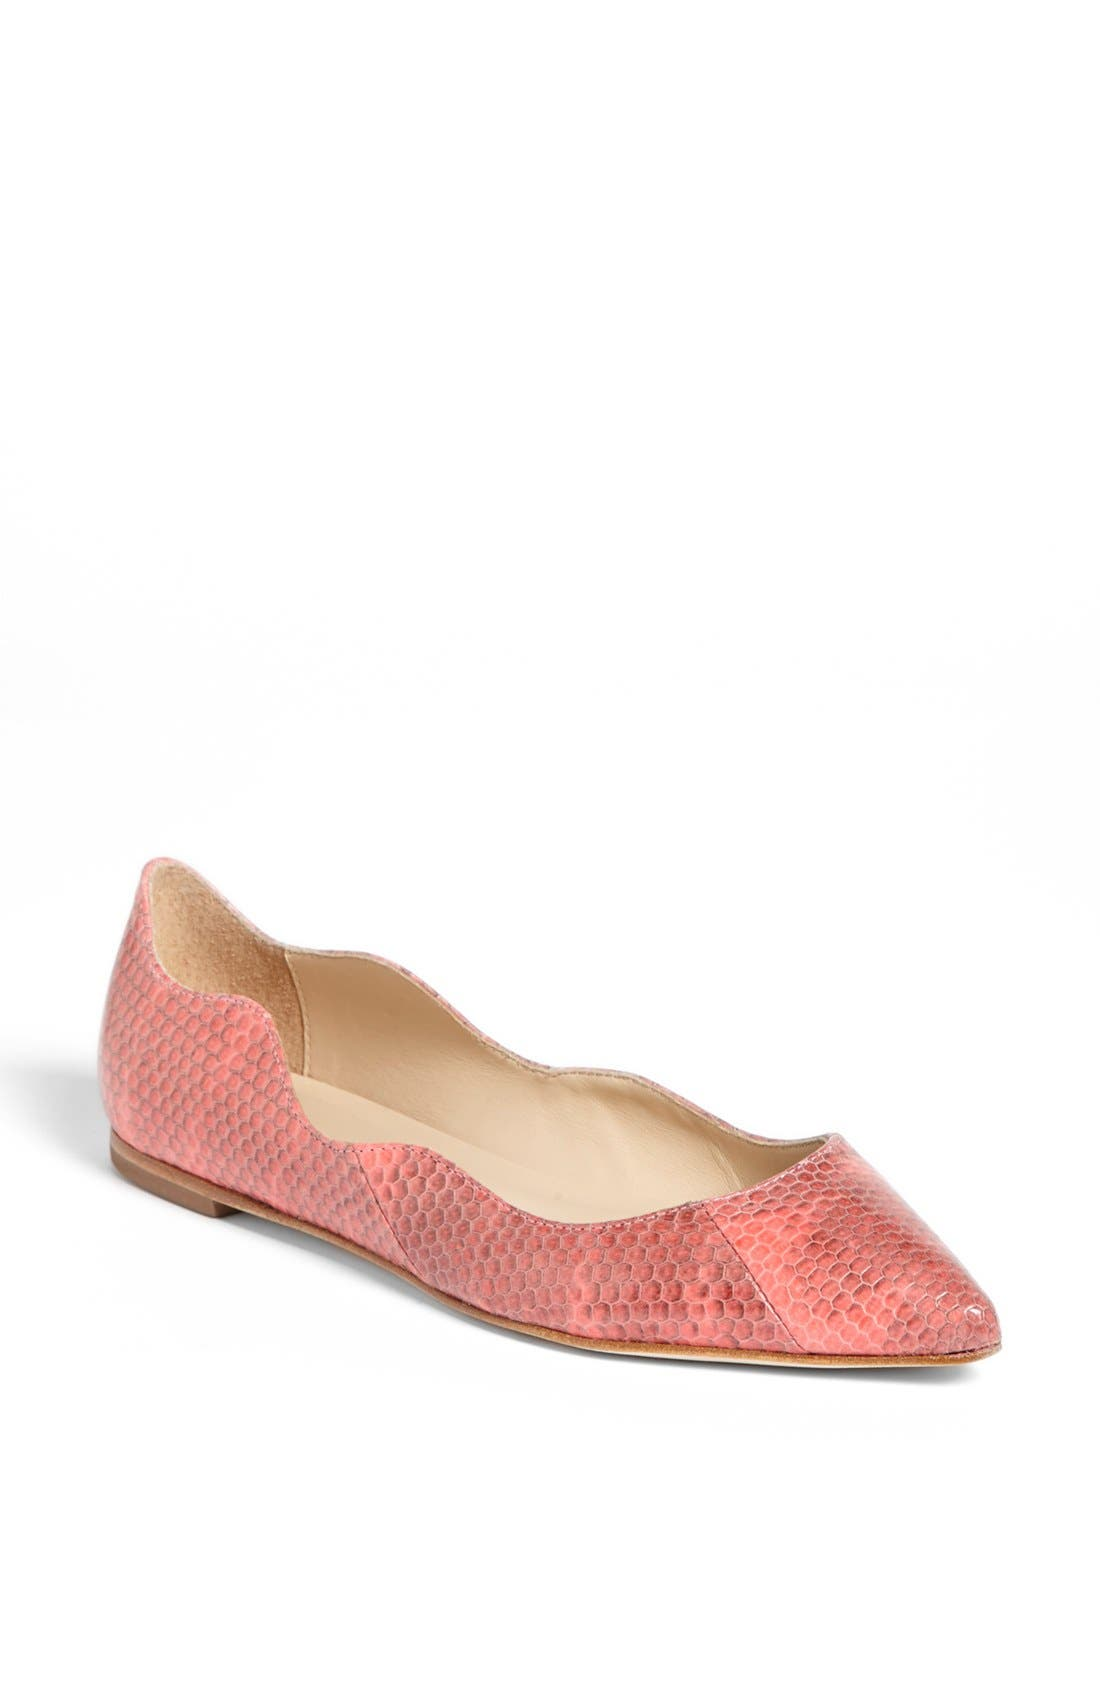 Alternate Image 1 Selected - Loeffler Randall 'Milla - Sea Skimmer' Flat (Online Only)